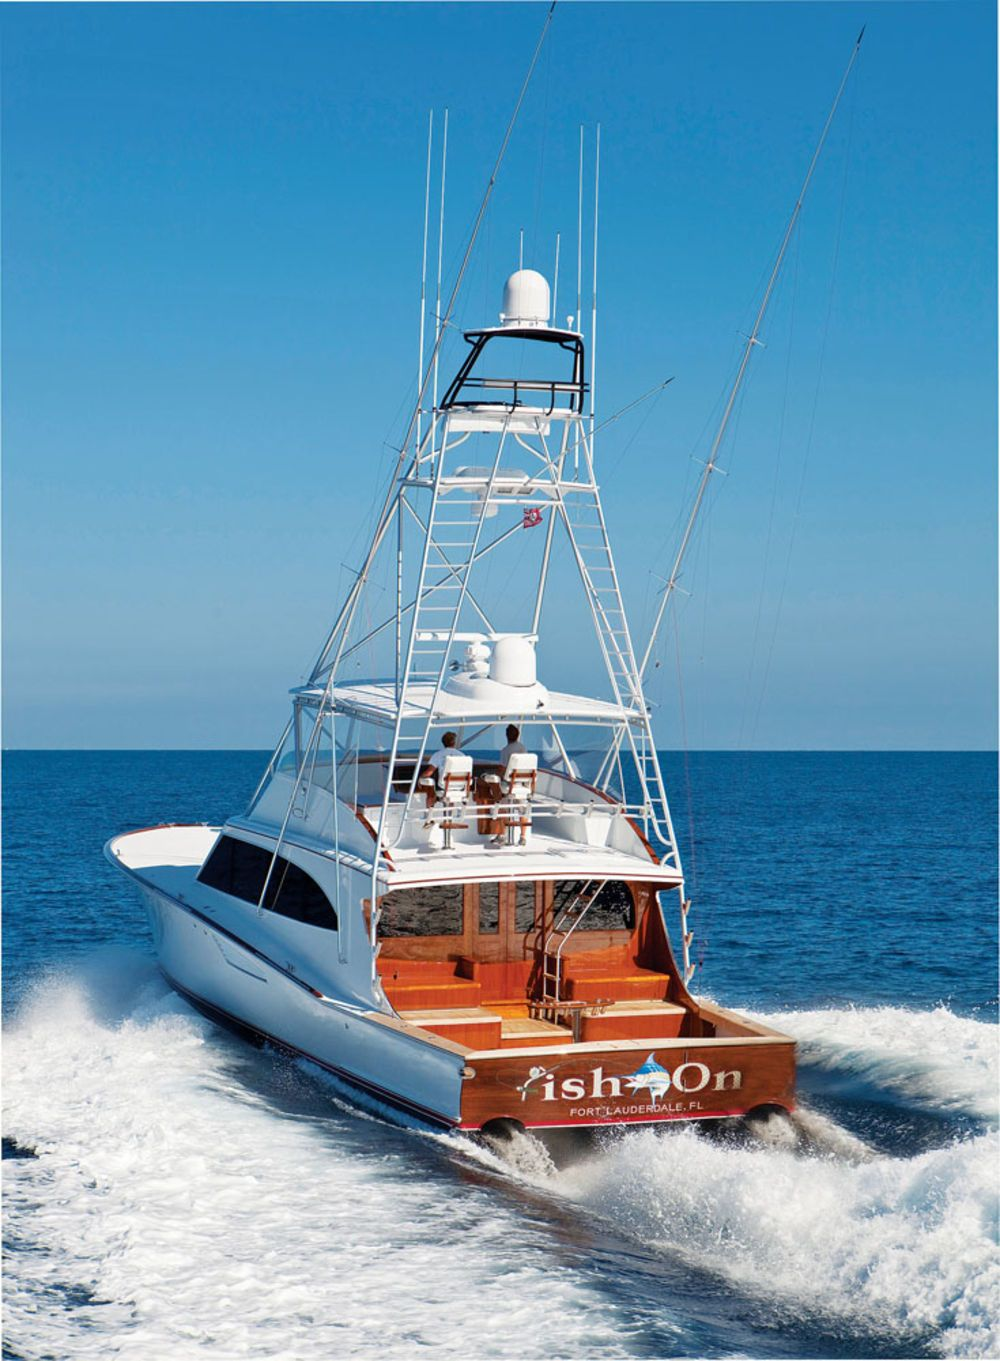 Marlin fishing boat images galleries for Best fishing boat